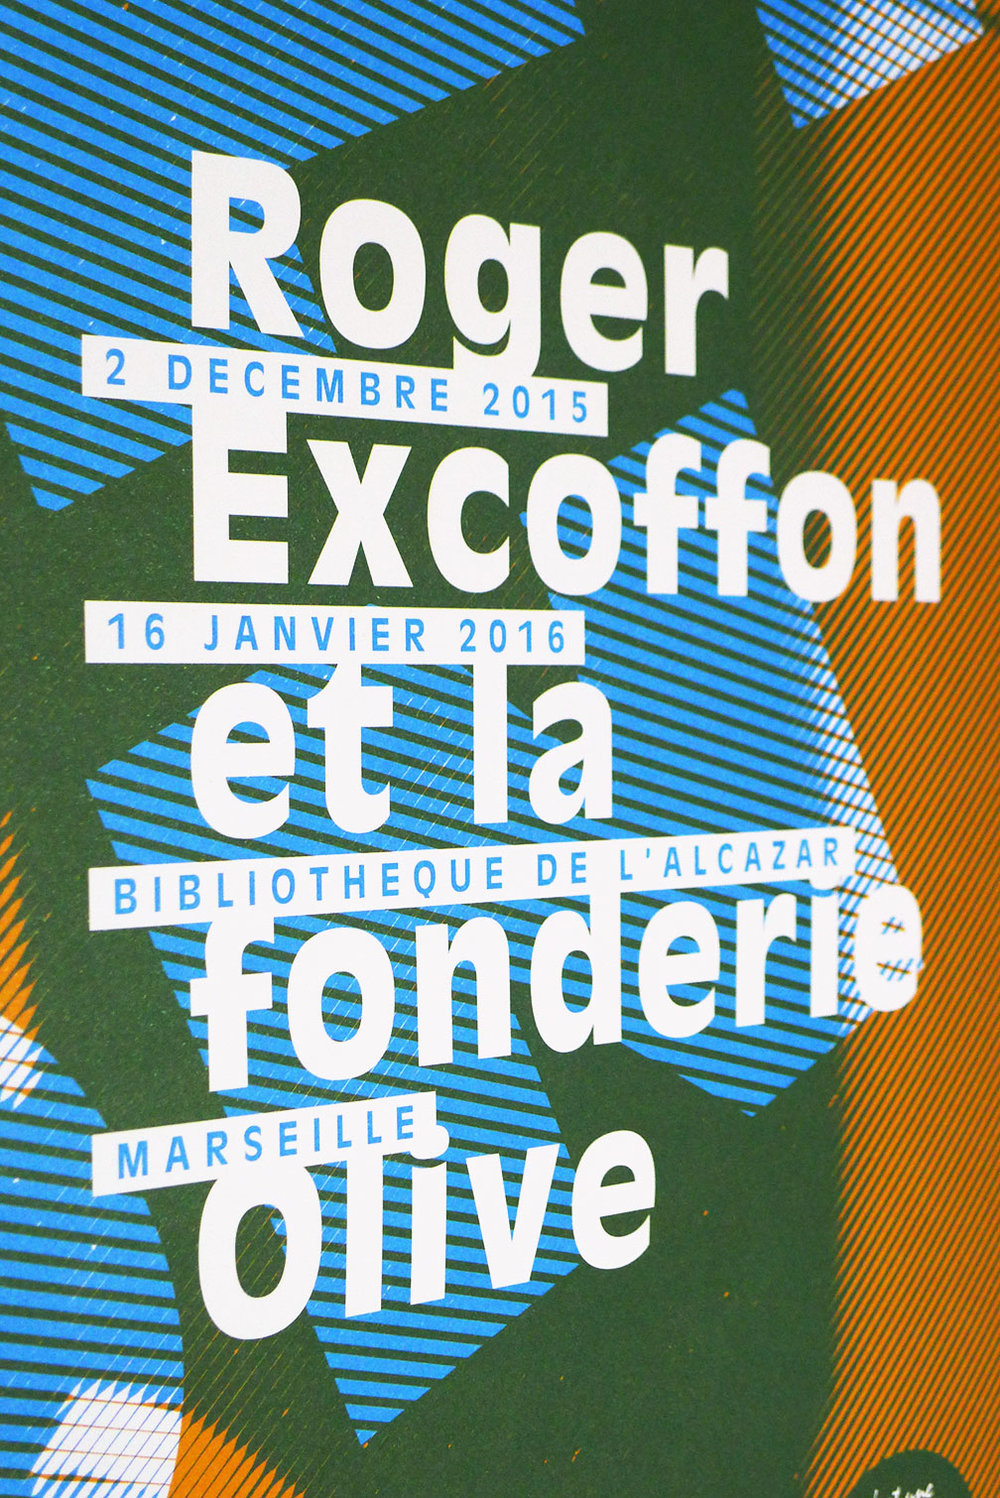 Roger-excoffon-olive-2.jpg